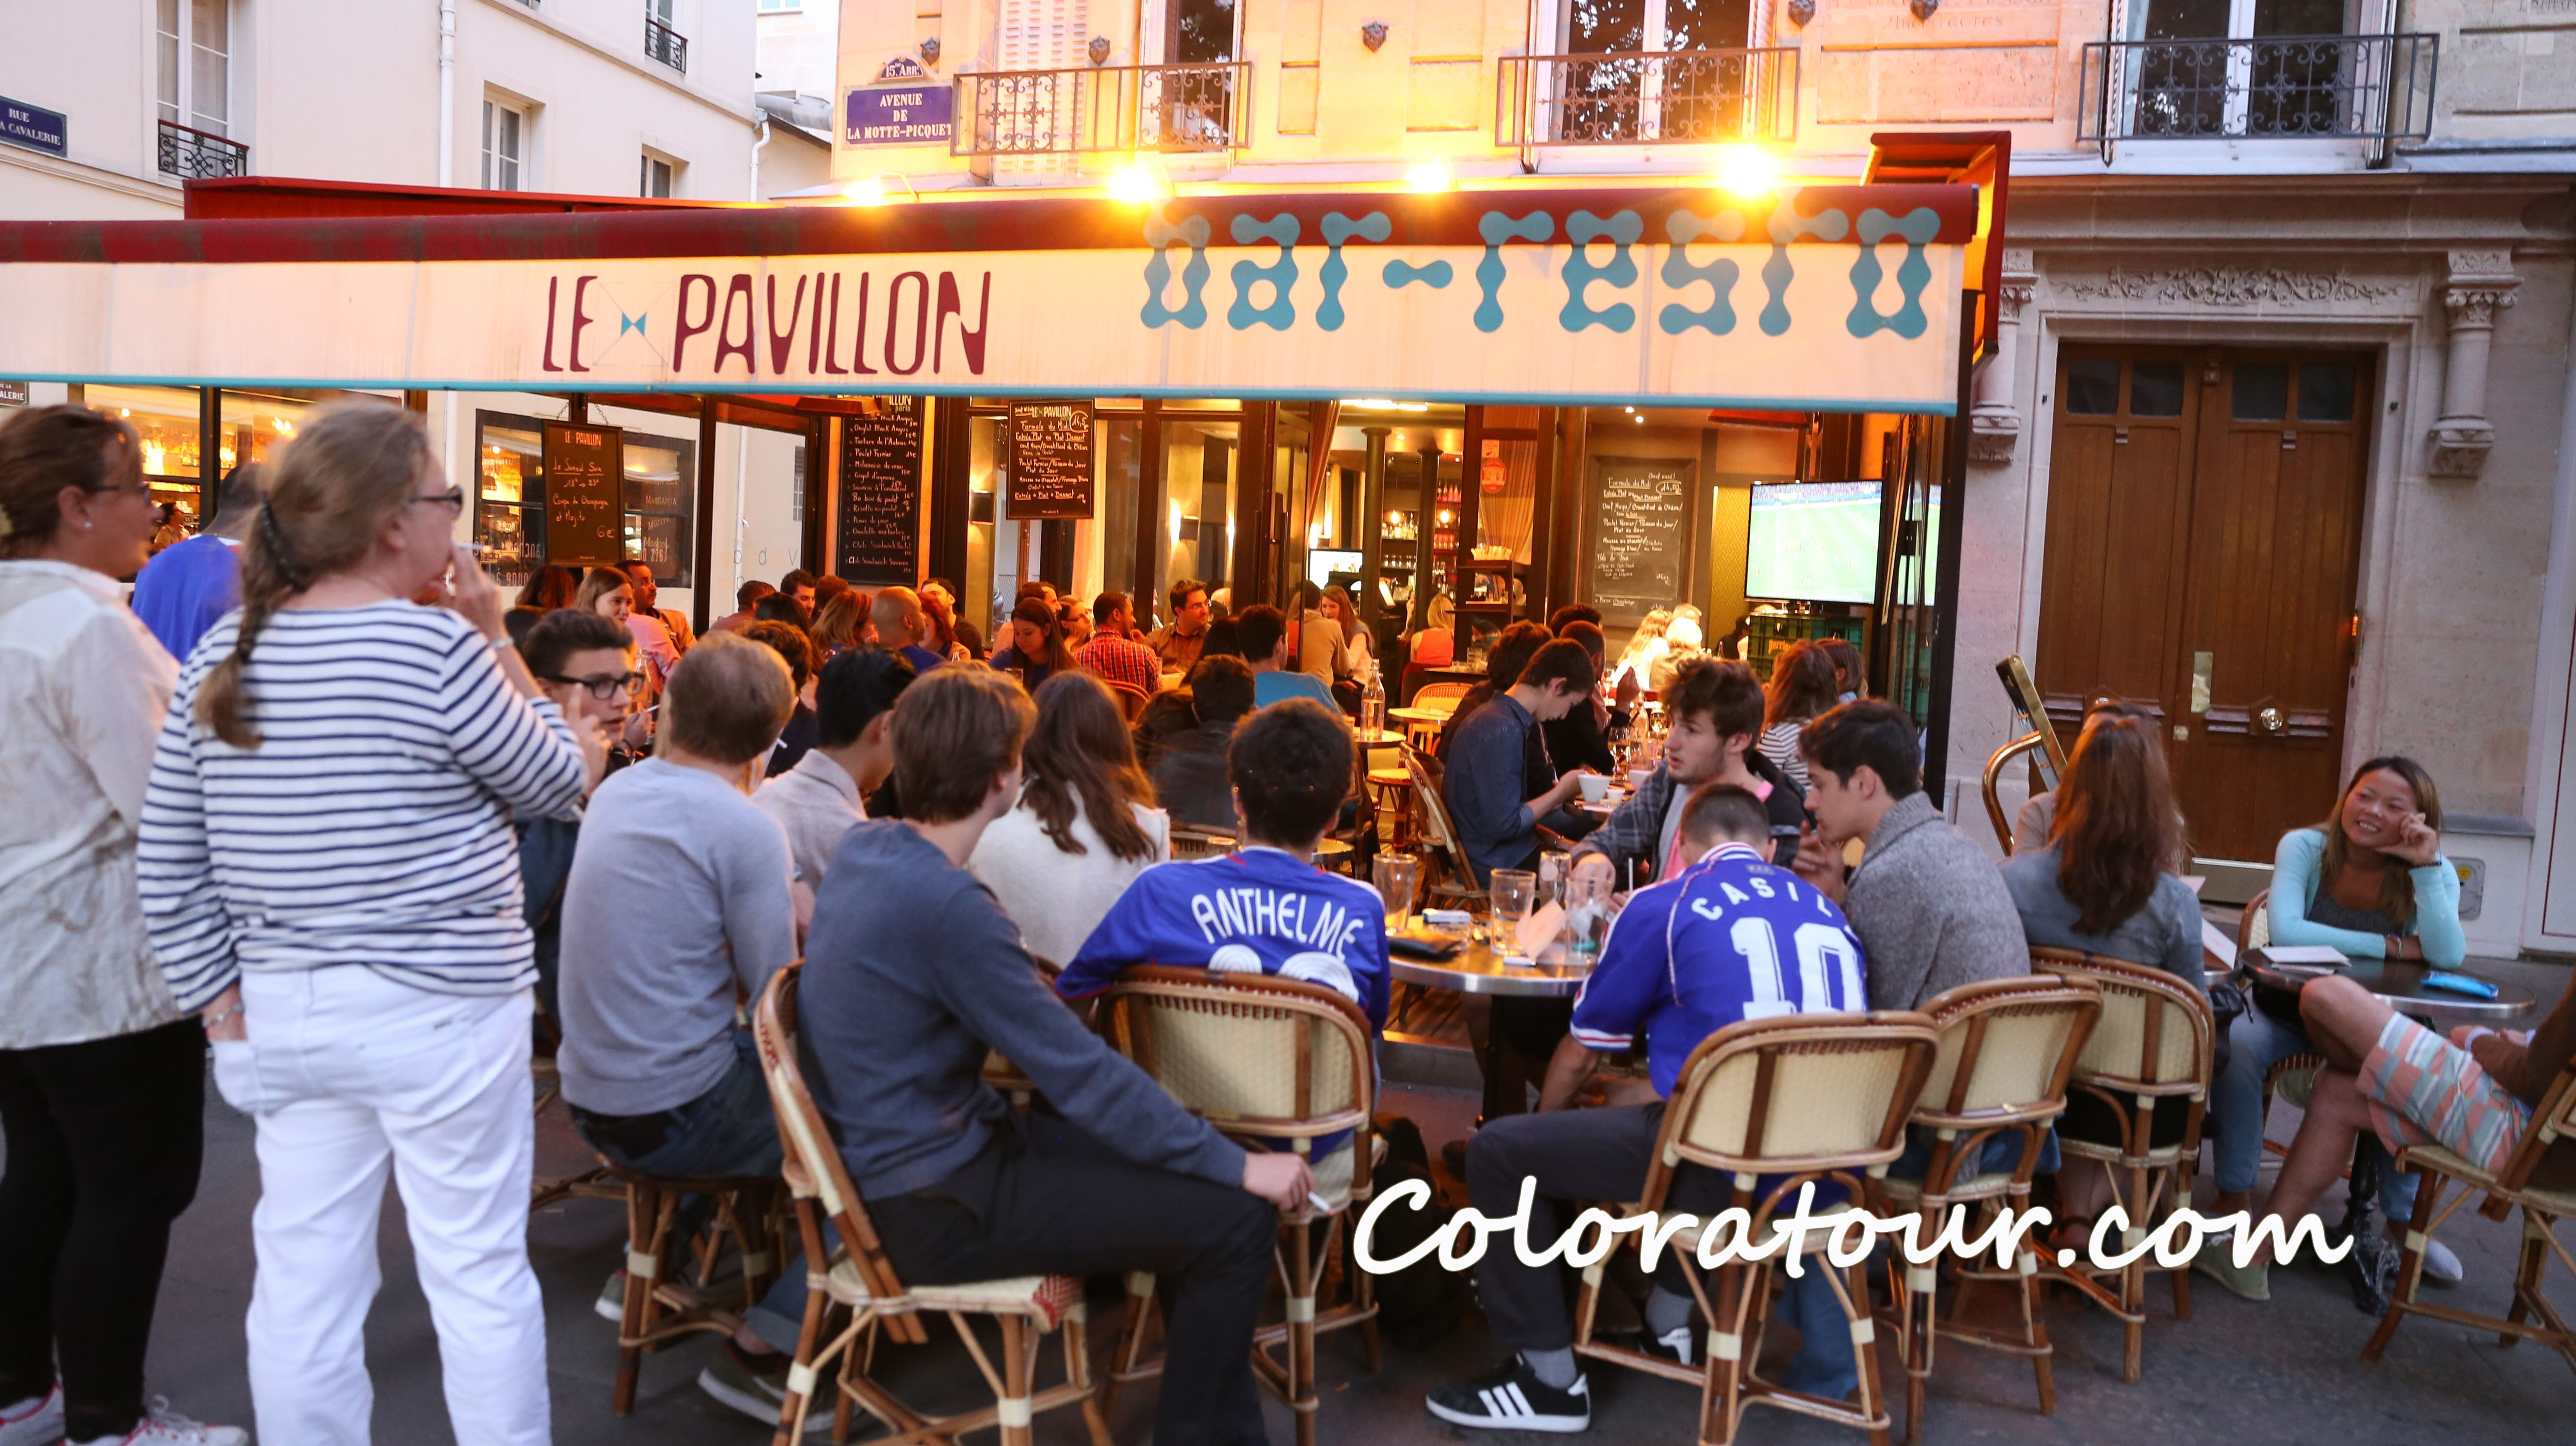 French soccer fans at a Café